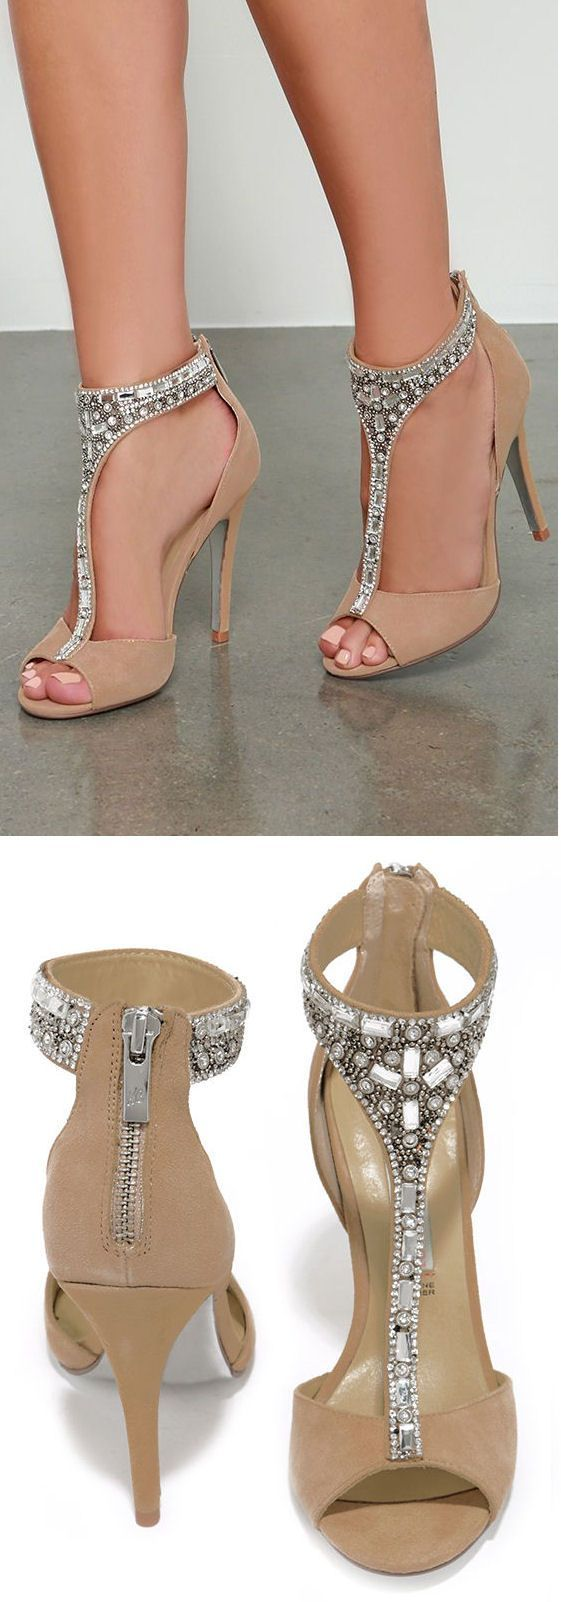 Nude Suede Bejeweled Heels | Shoes! Can't Have Enough! | Pinterest ...